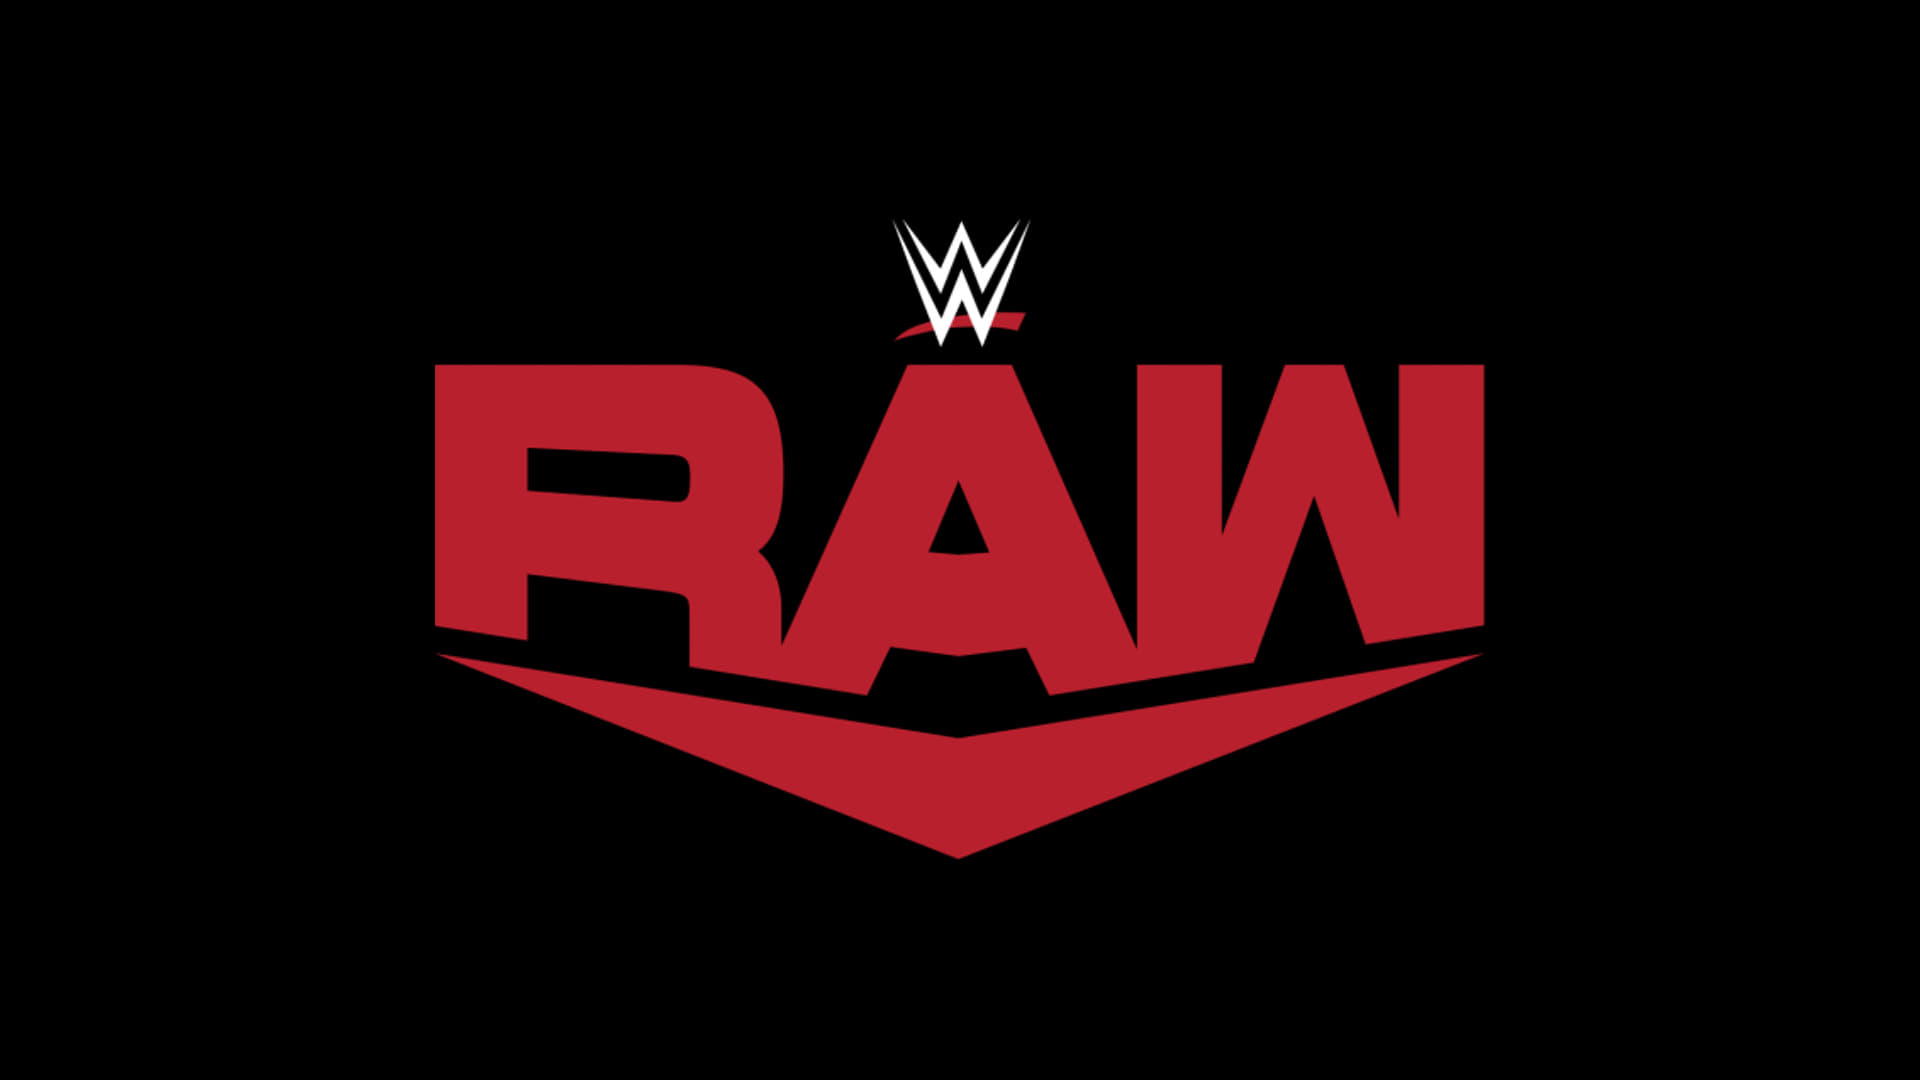 WWE Raw - Season 9 Episode 37 : RAW is WAR 433